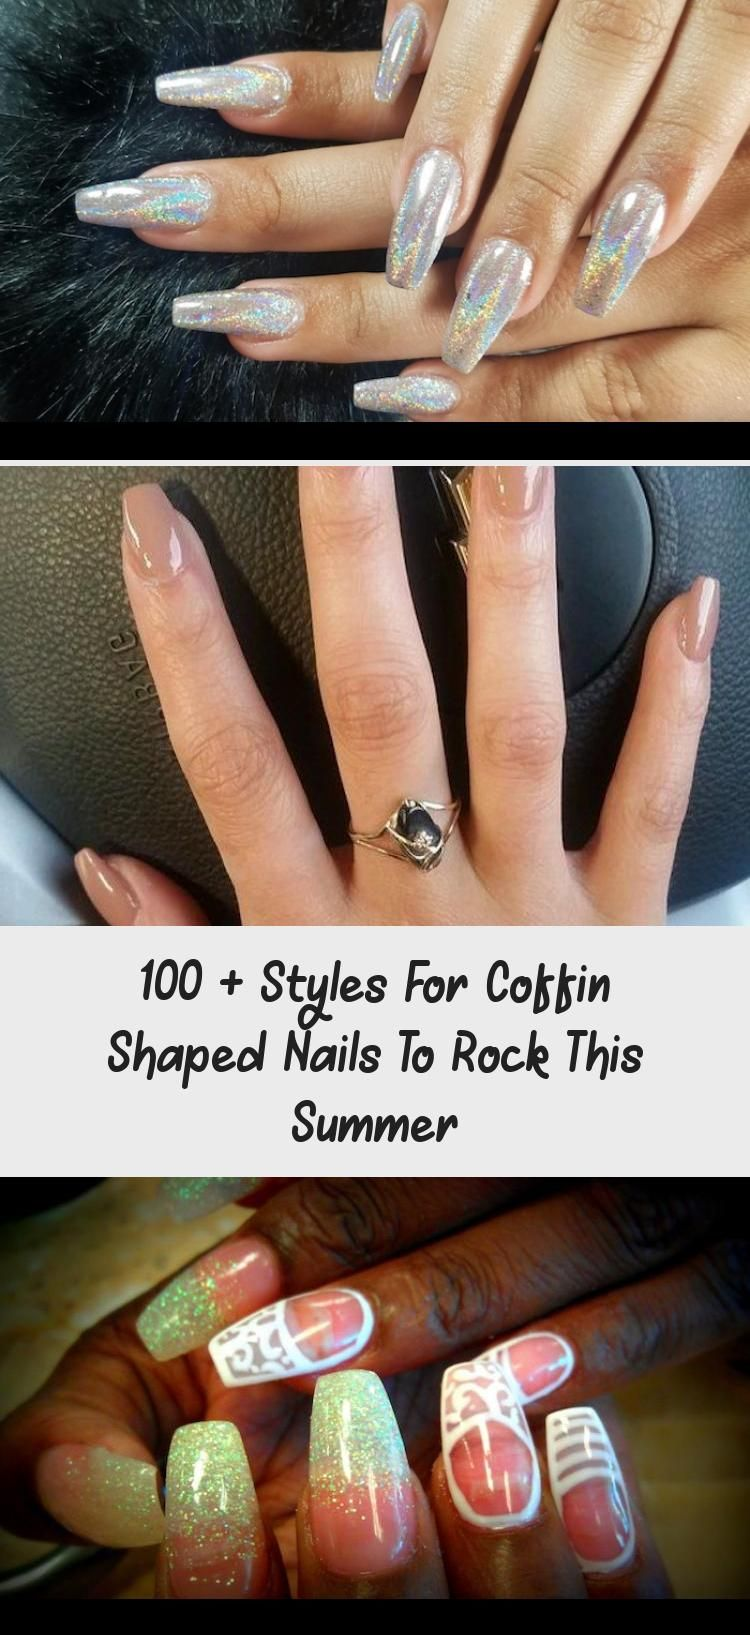 Photo of 100 + Styles For Coffin Shaped Nails To Rock This Summer – Skin Nail Care